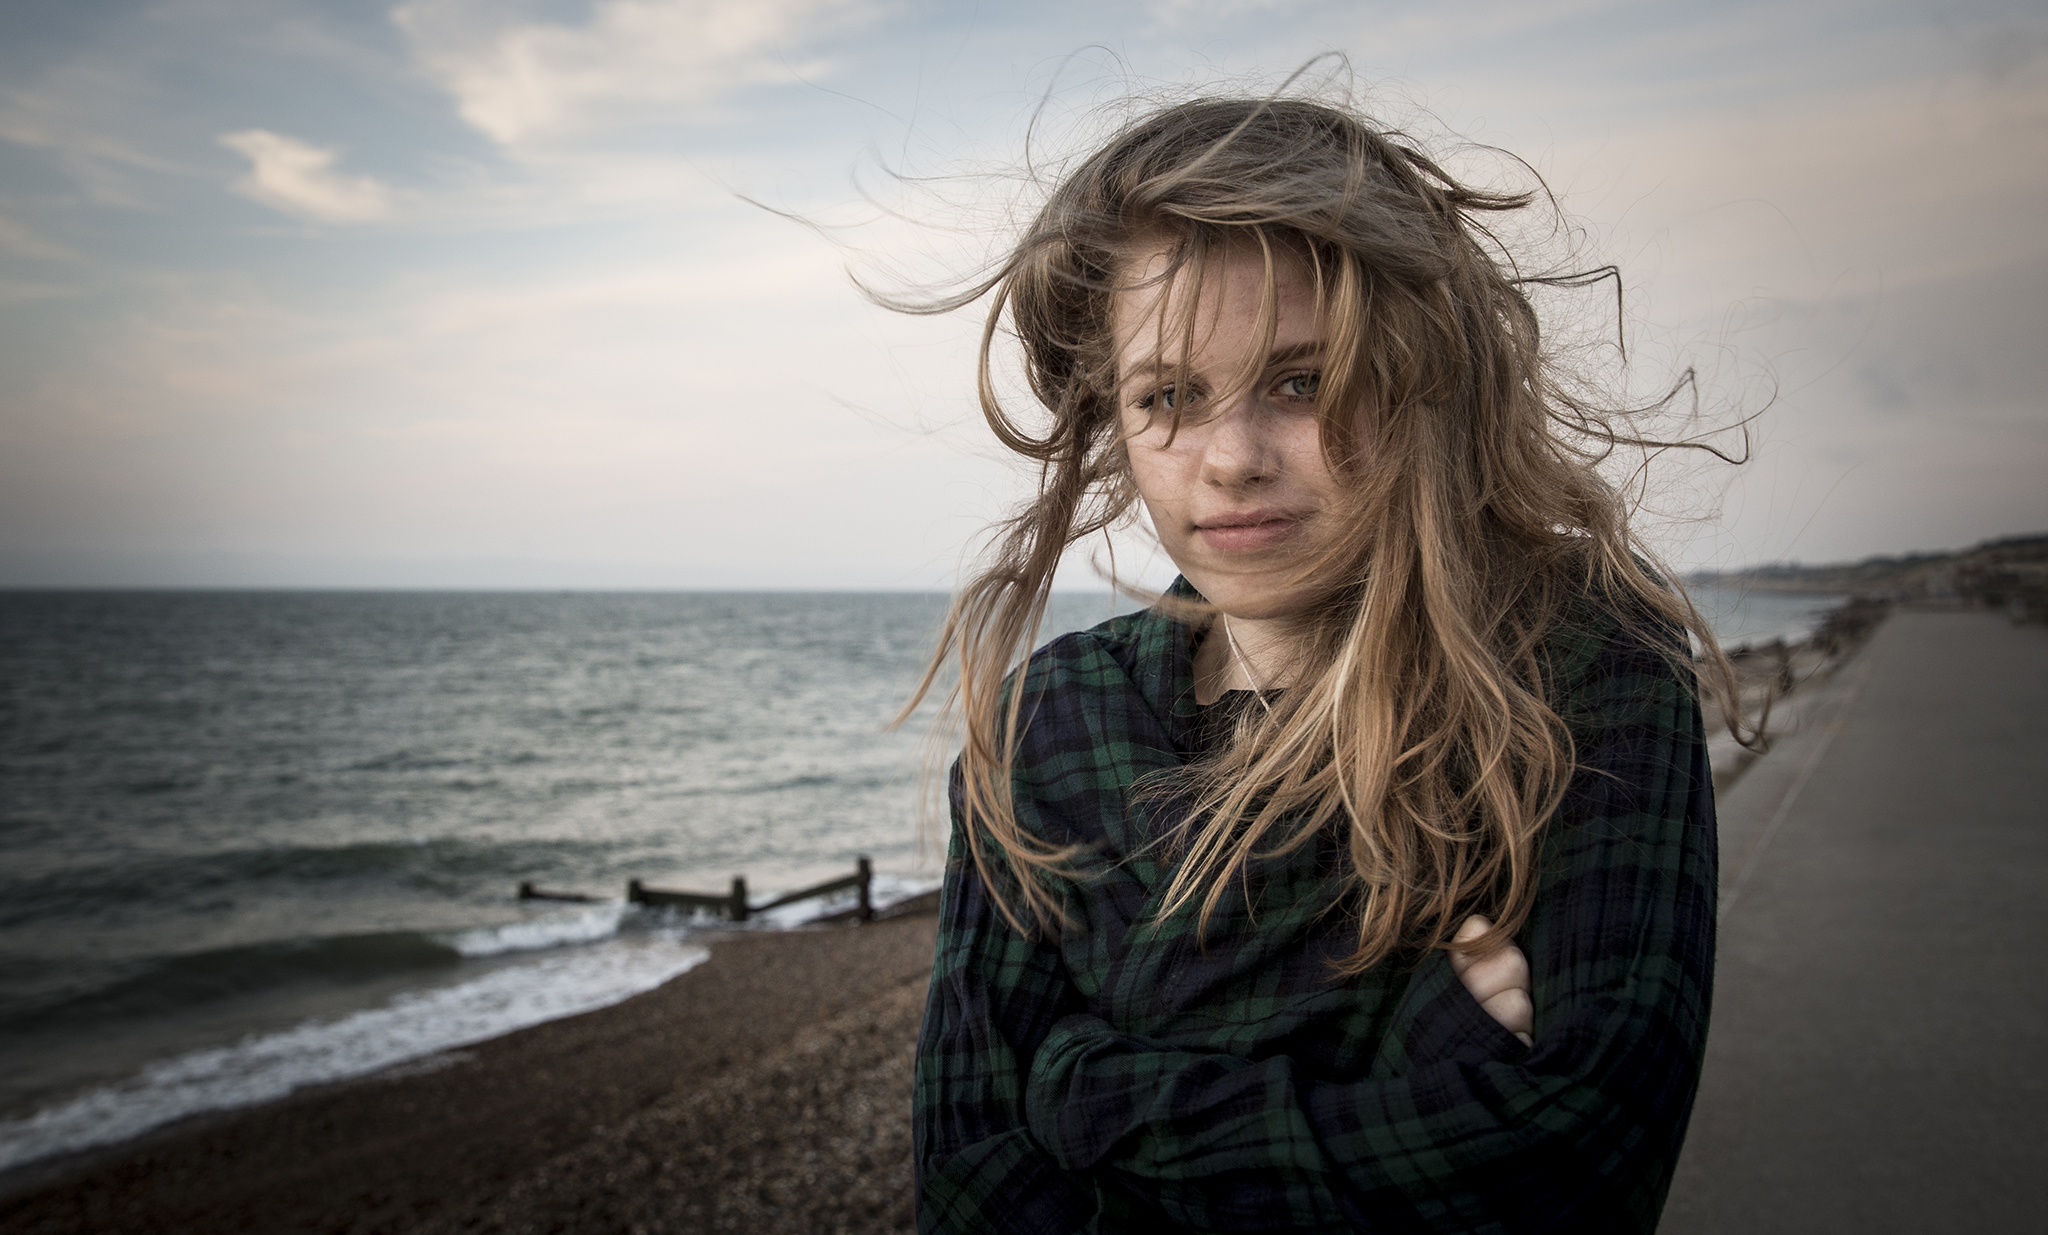 A wild and wind-swept Marianne